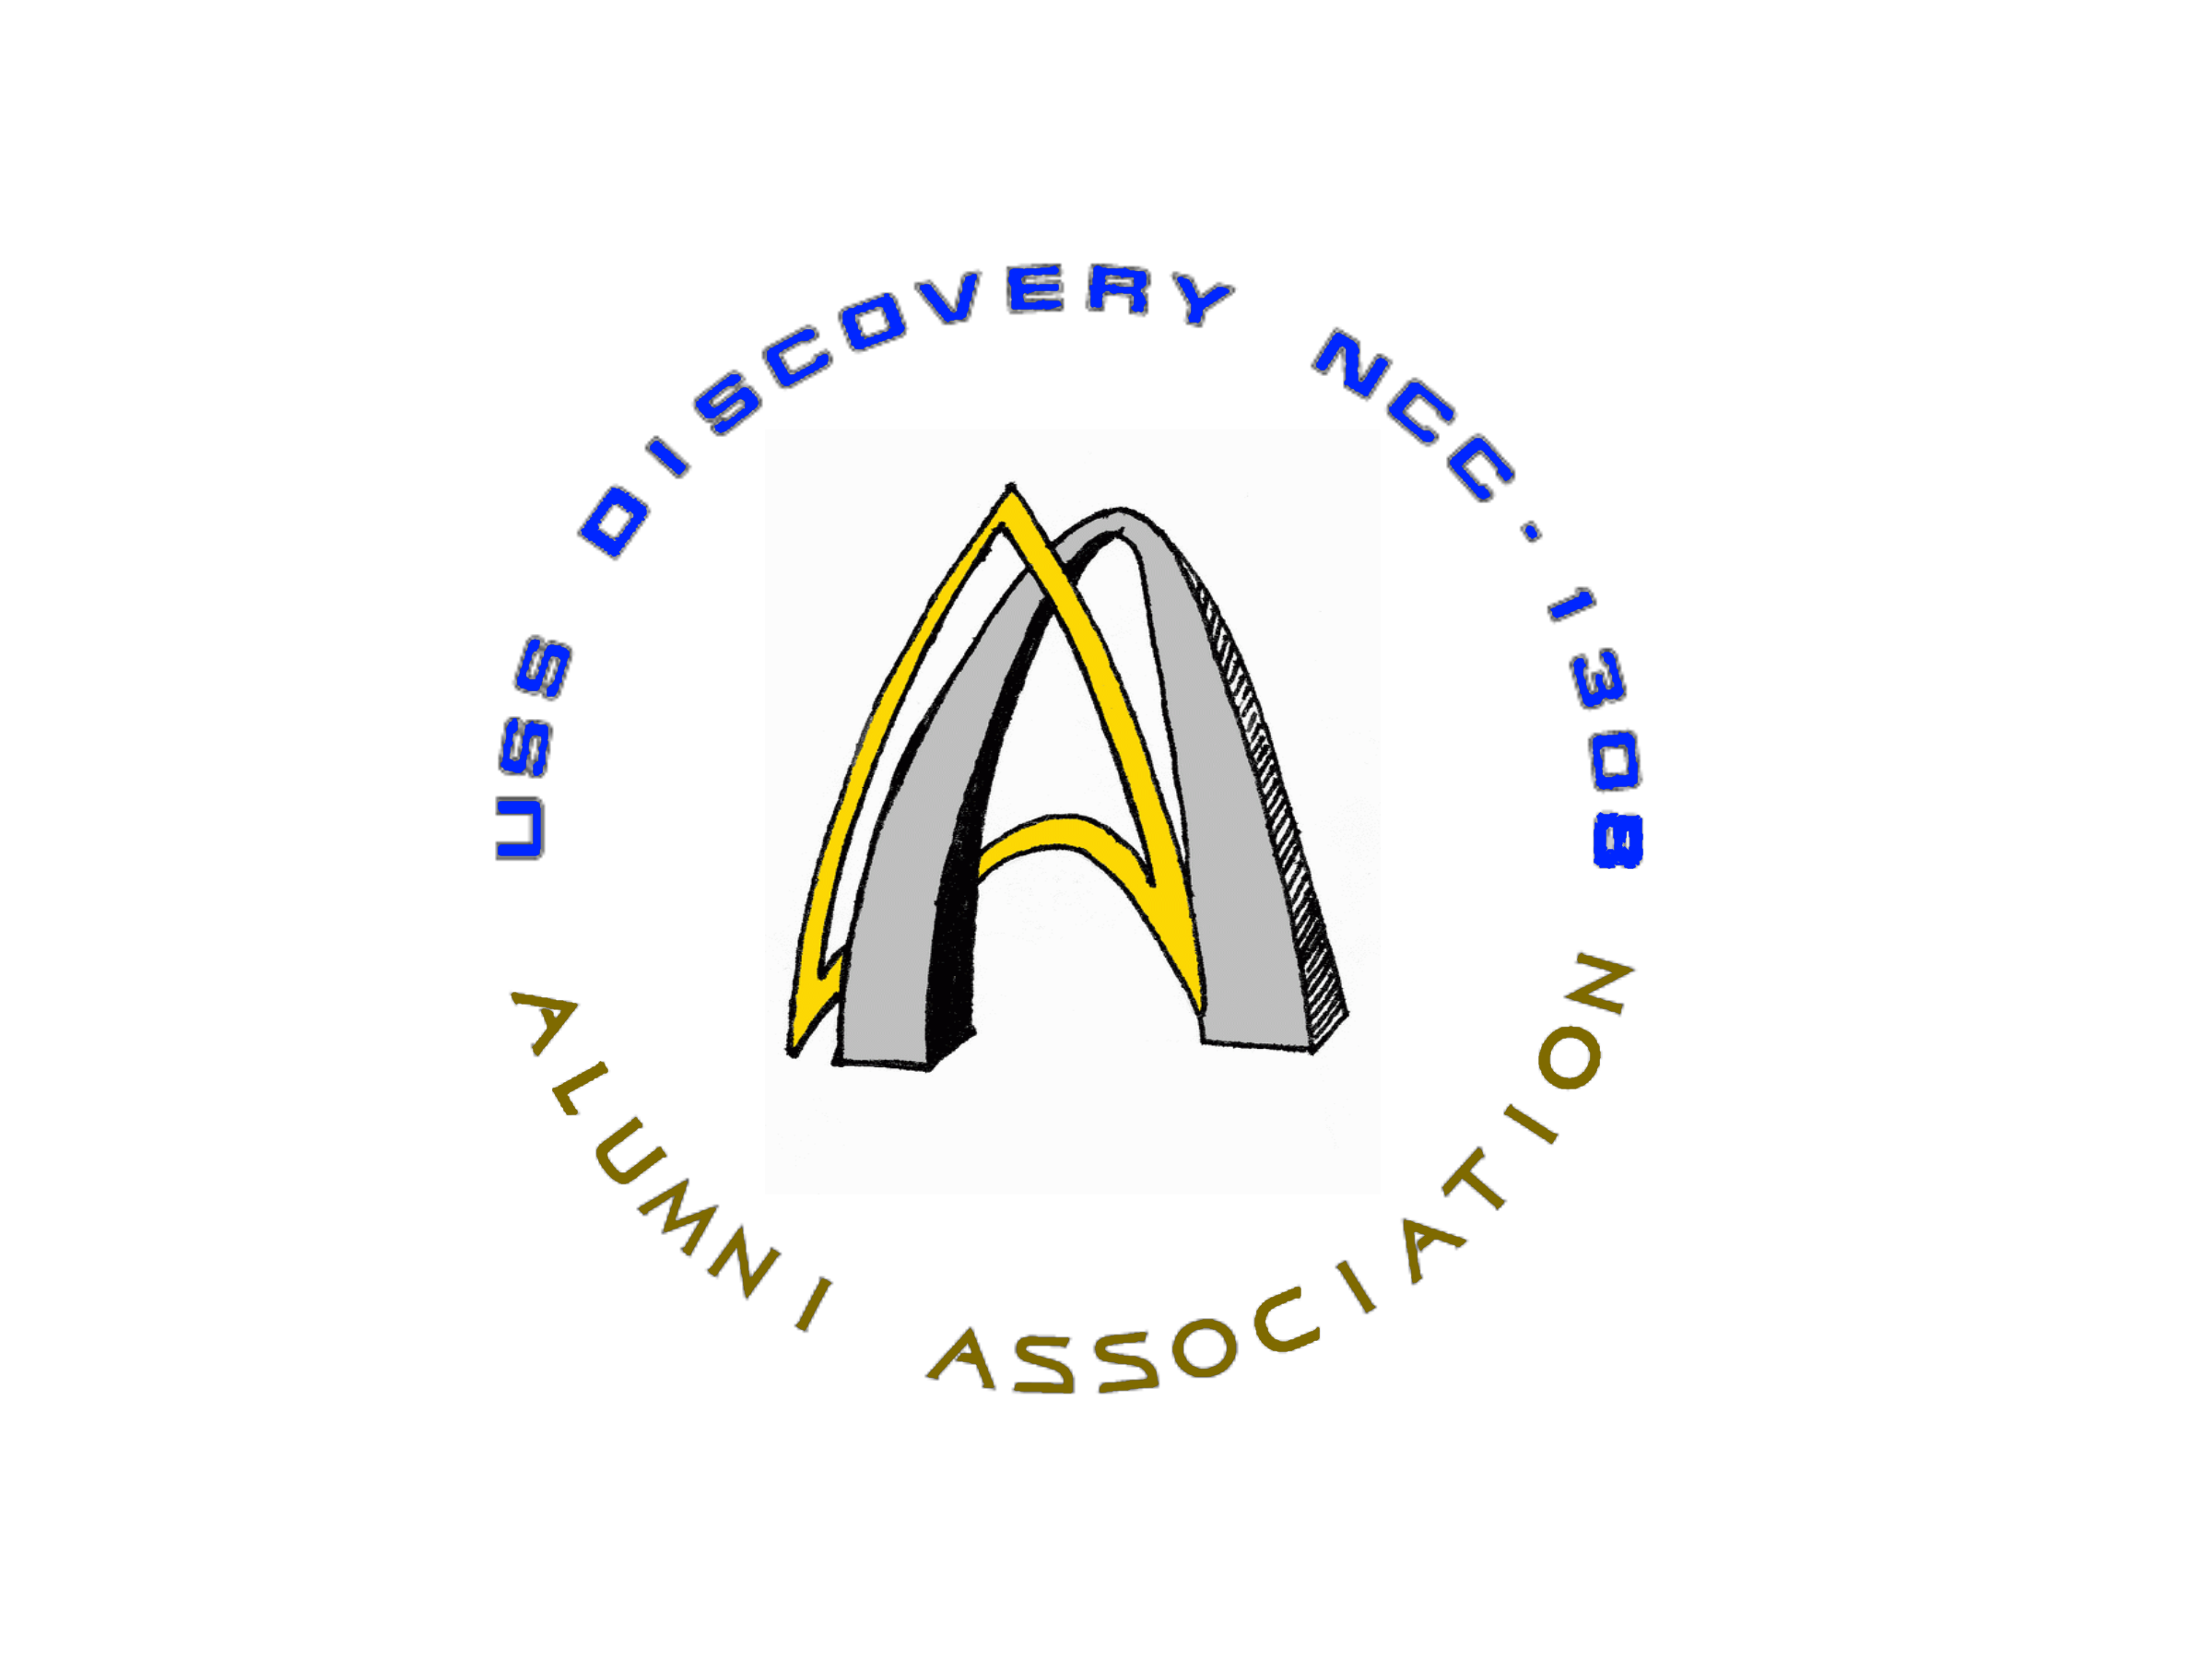 Logo Of The Uss Discovery Ncc 1308 Alumni Association With Images Uss Discovery Retail Logos